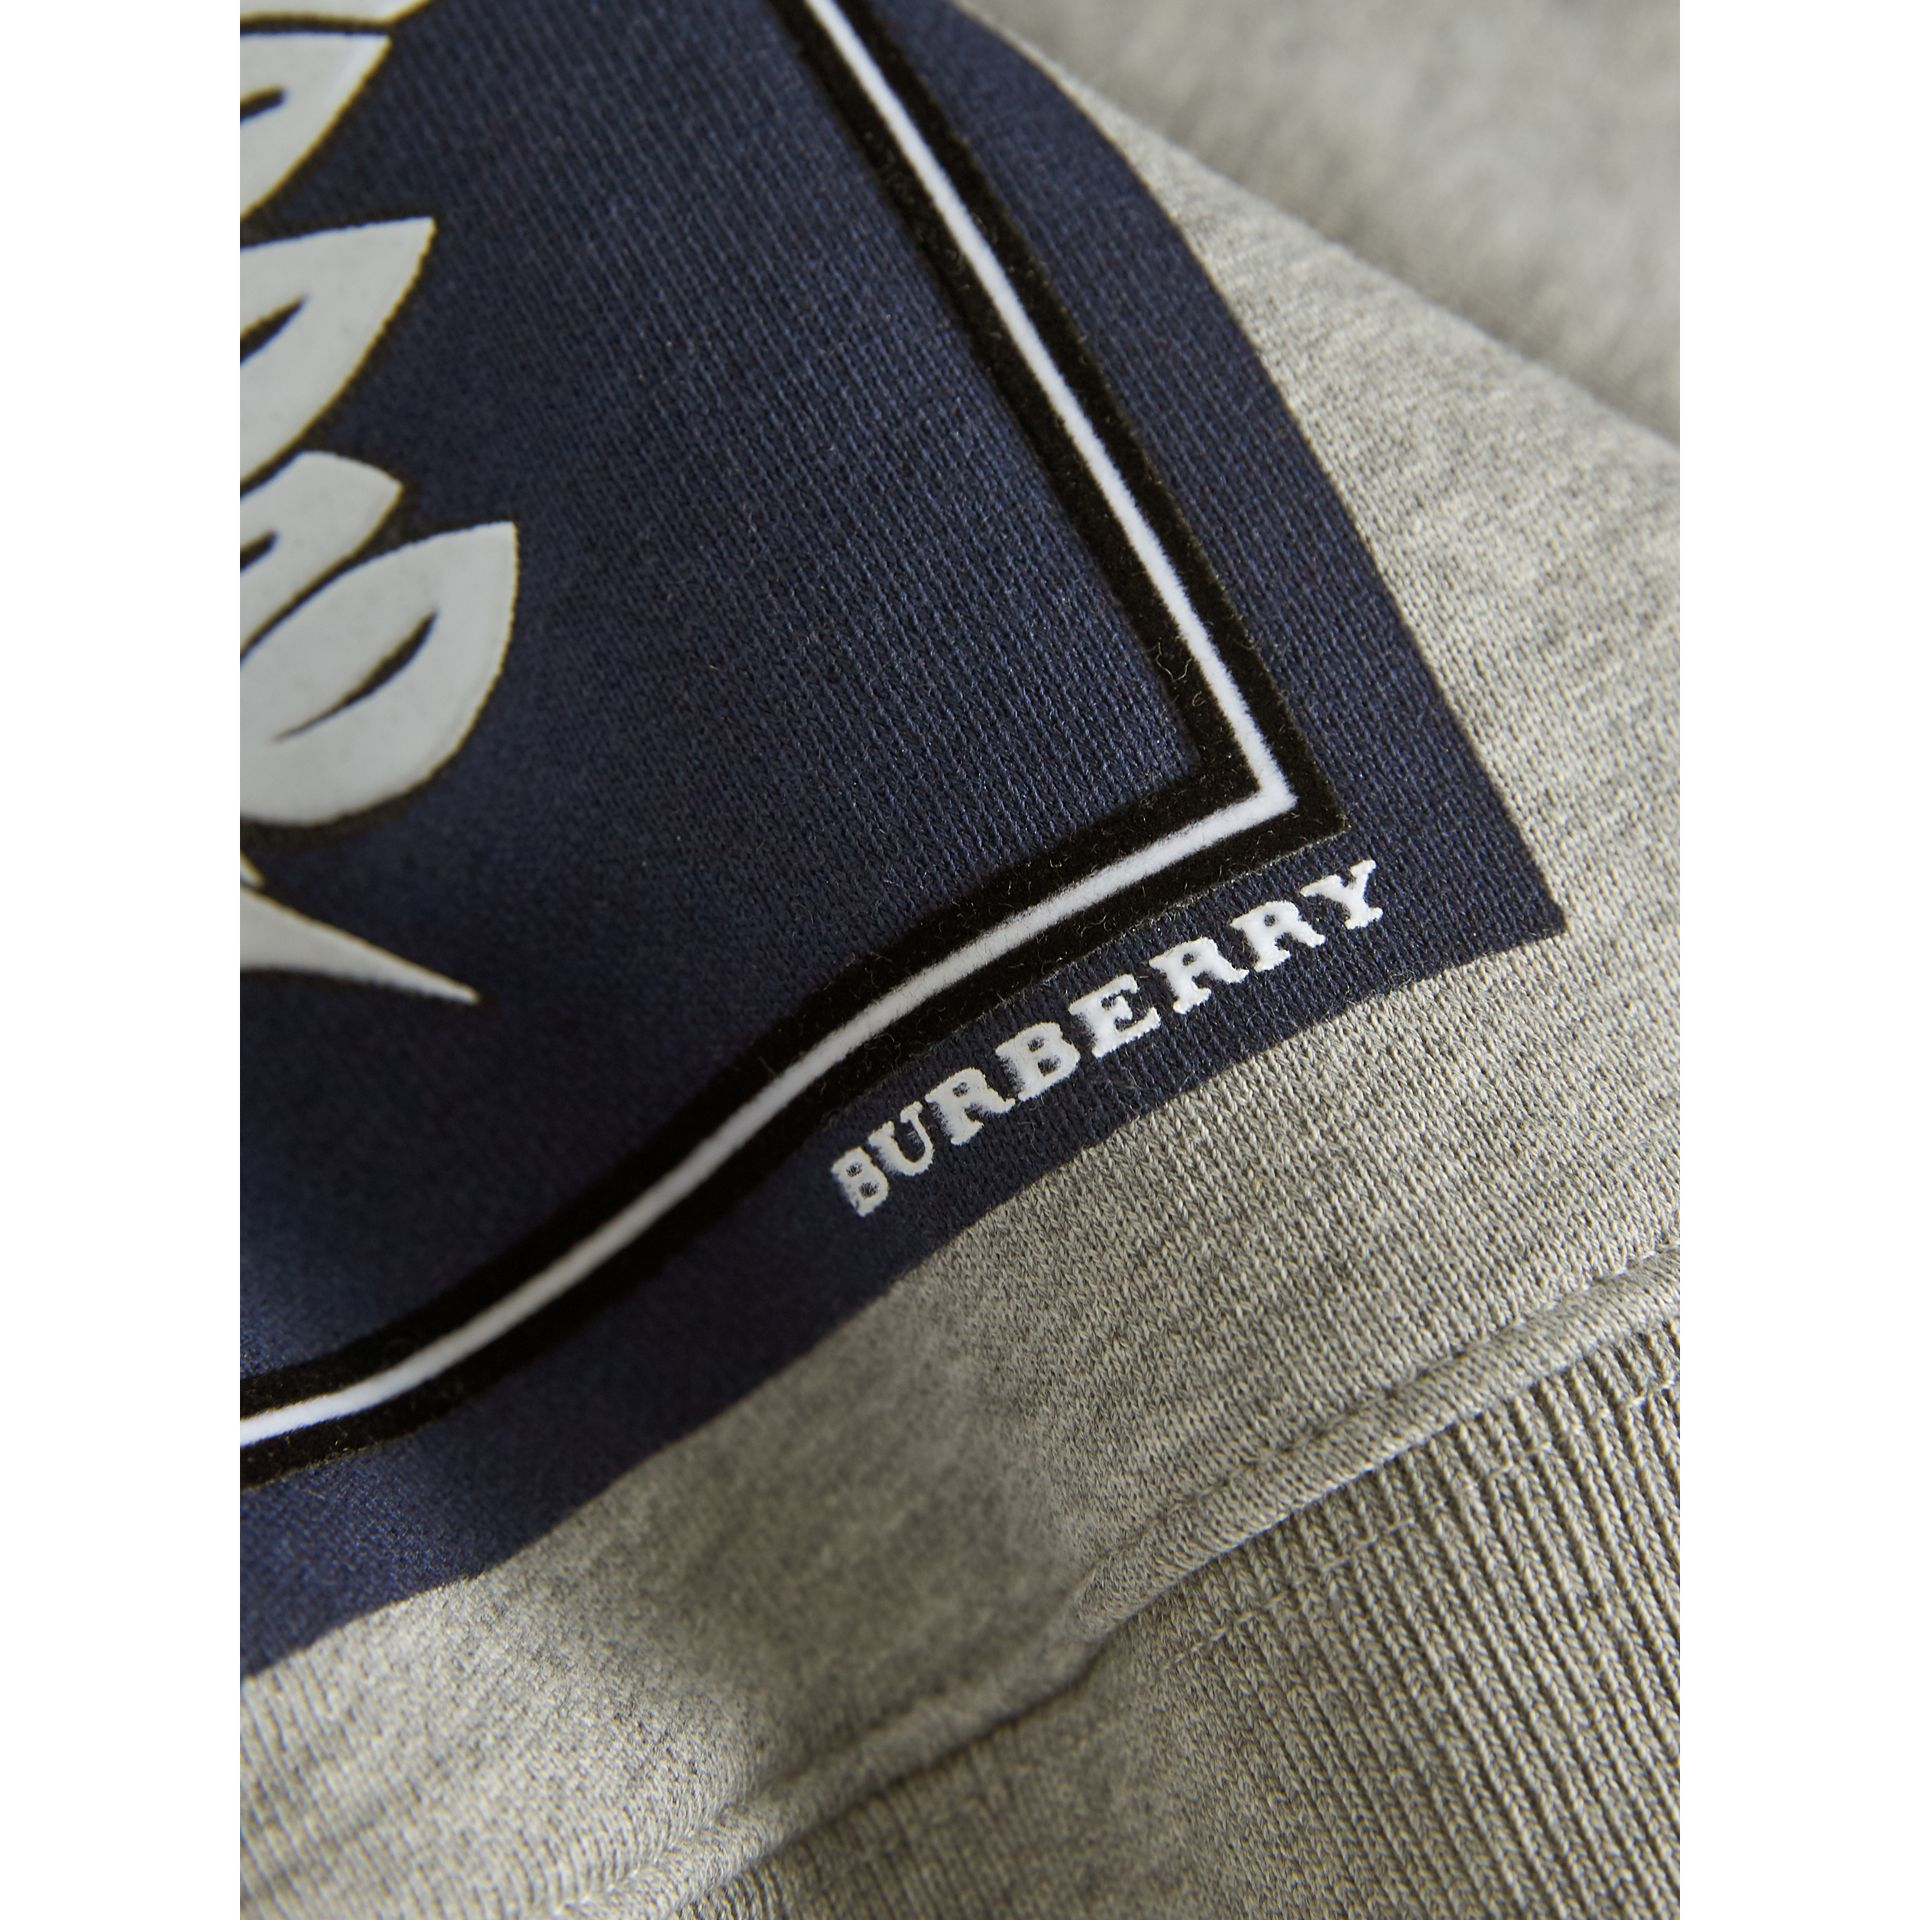 Beasts Print Cotton Sweatshirt | Burberry - gallery image 2